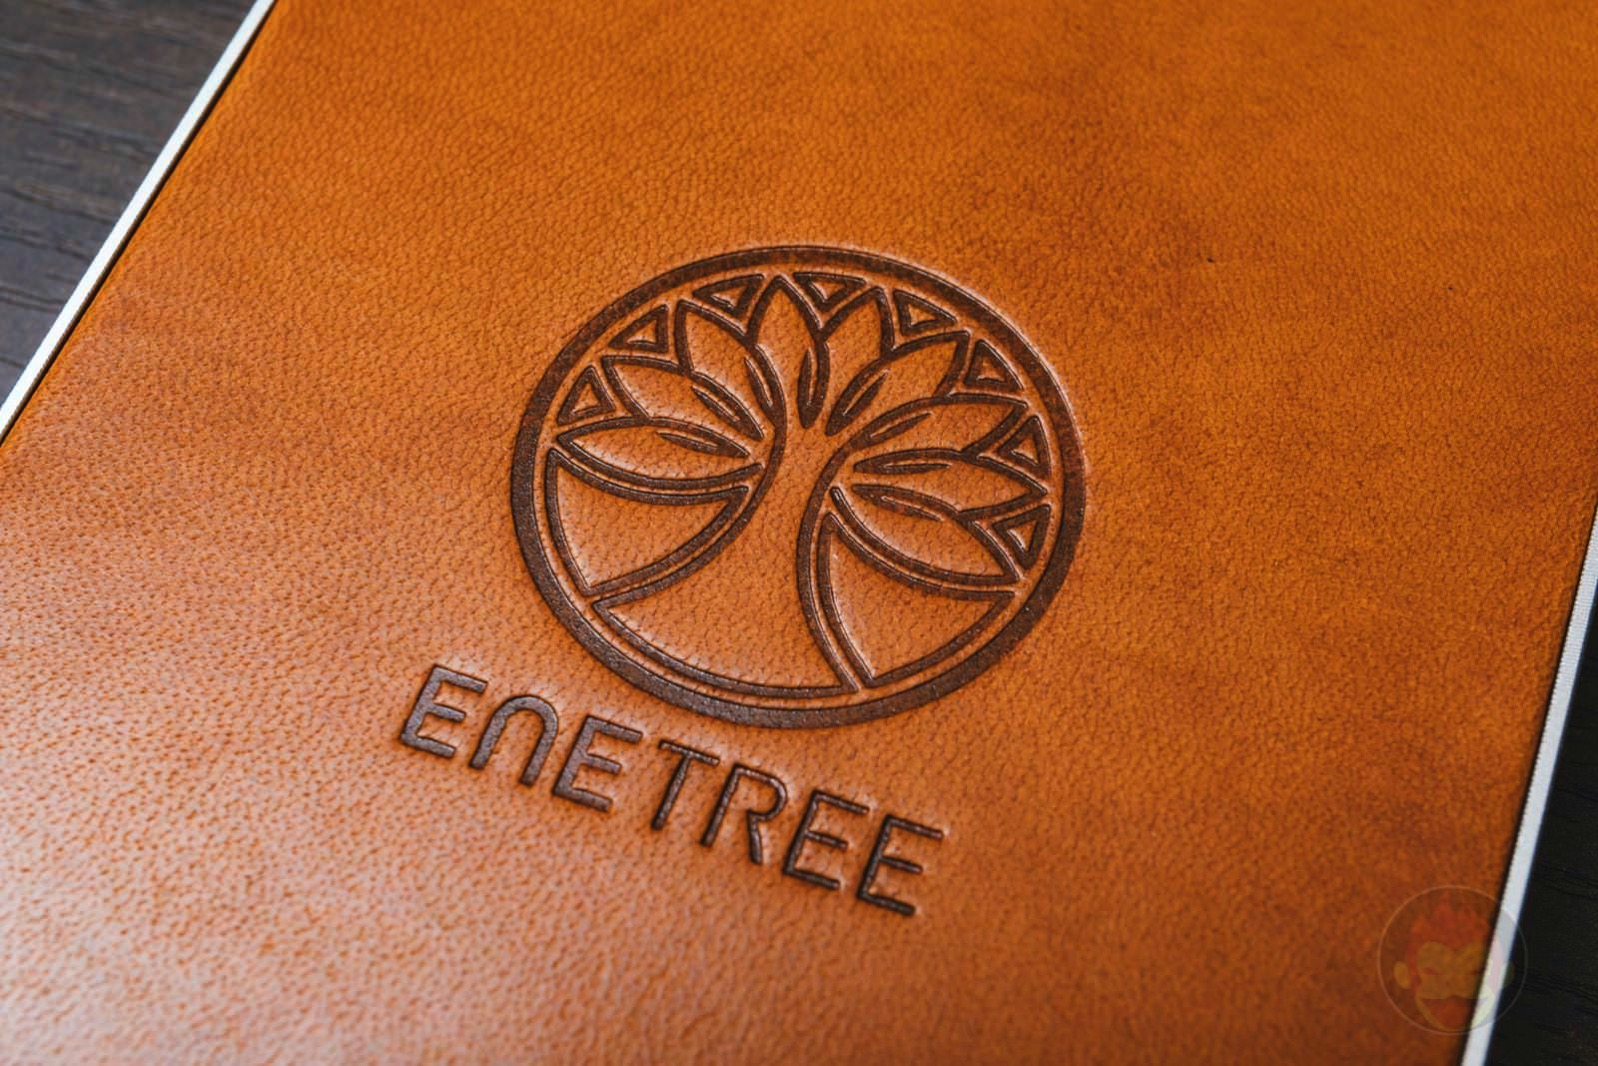 ENETREE Wireless Charger for iPhone 09